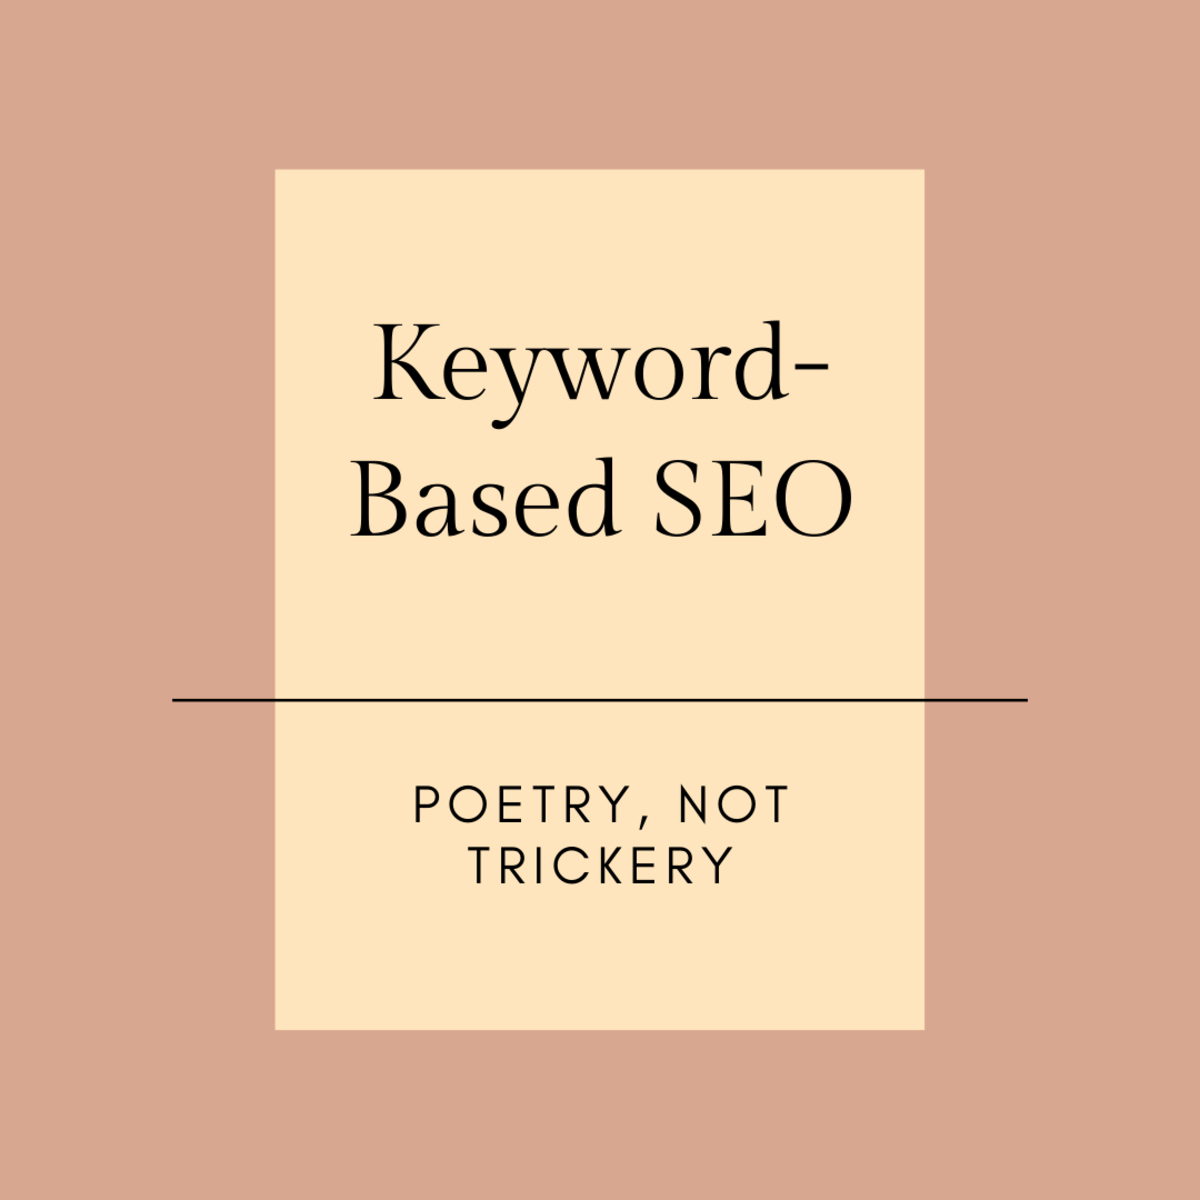 Keyword-Based SEO Is Poetry, Not Trickery